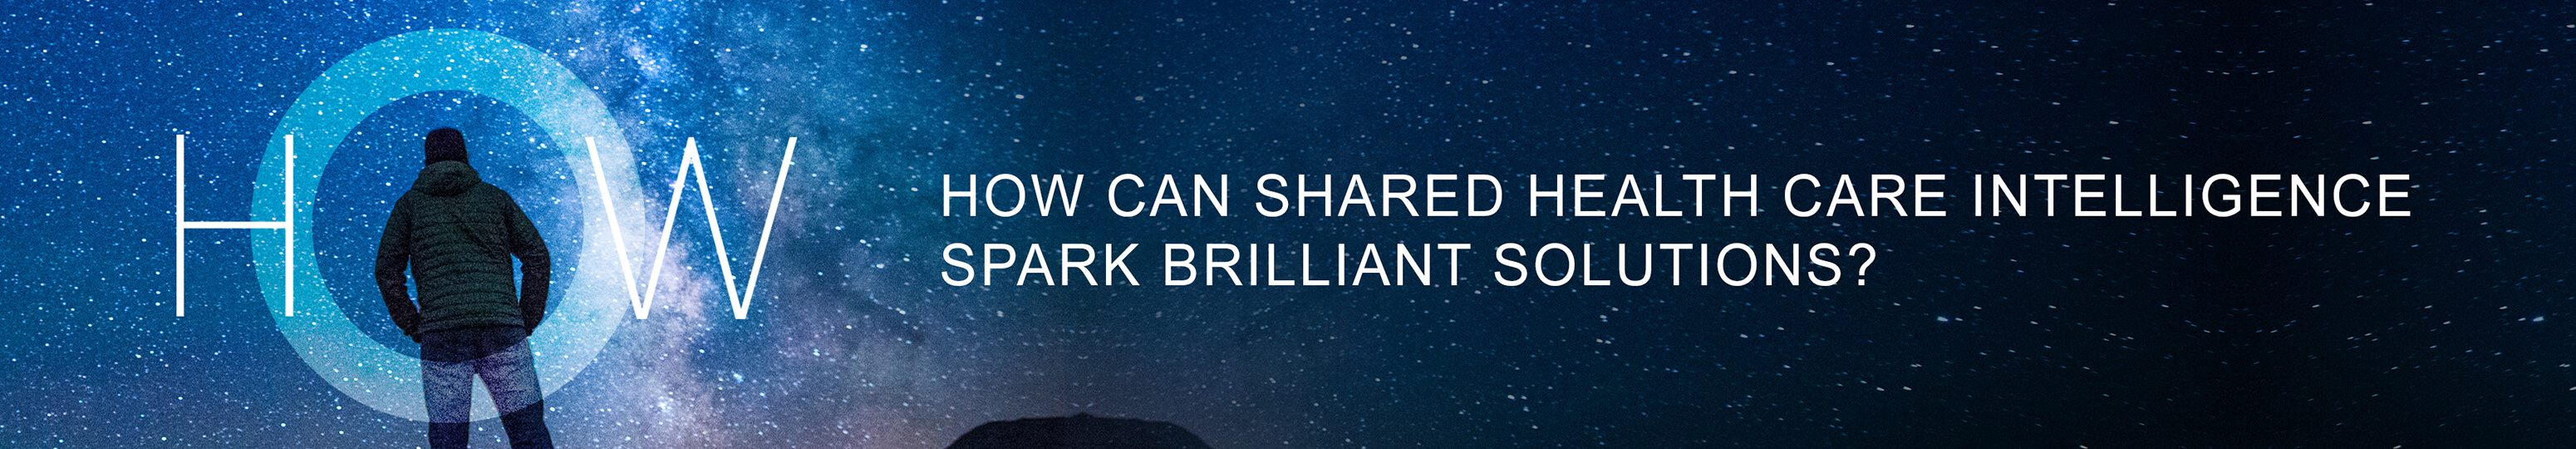 How does shared health care intelligence spark brilliant solutions?